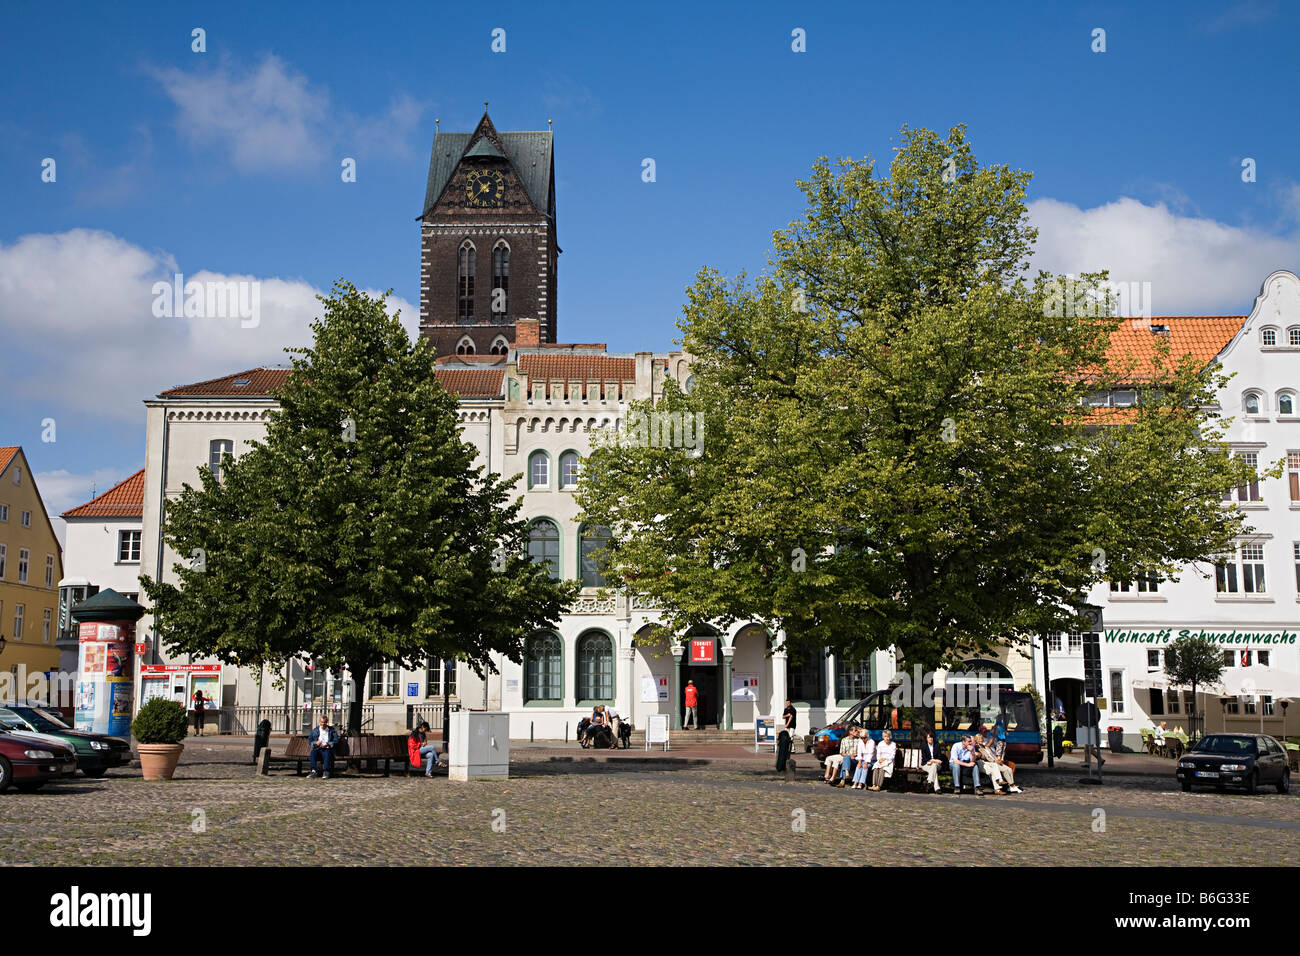 People in the town square Wismar Germany - Stock Image